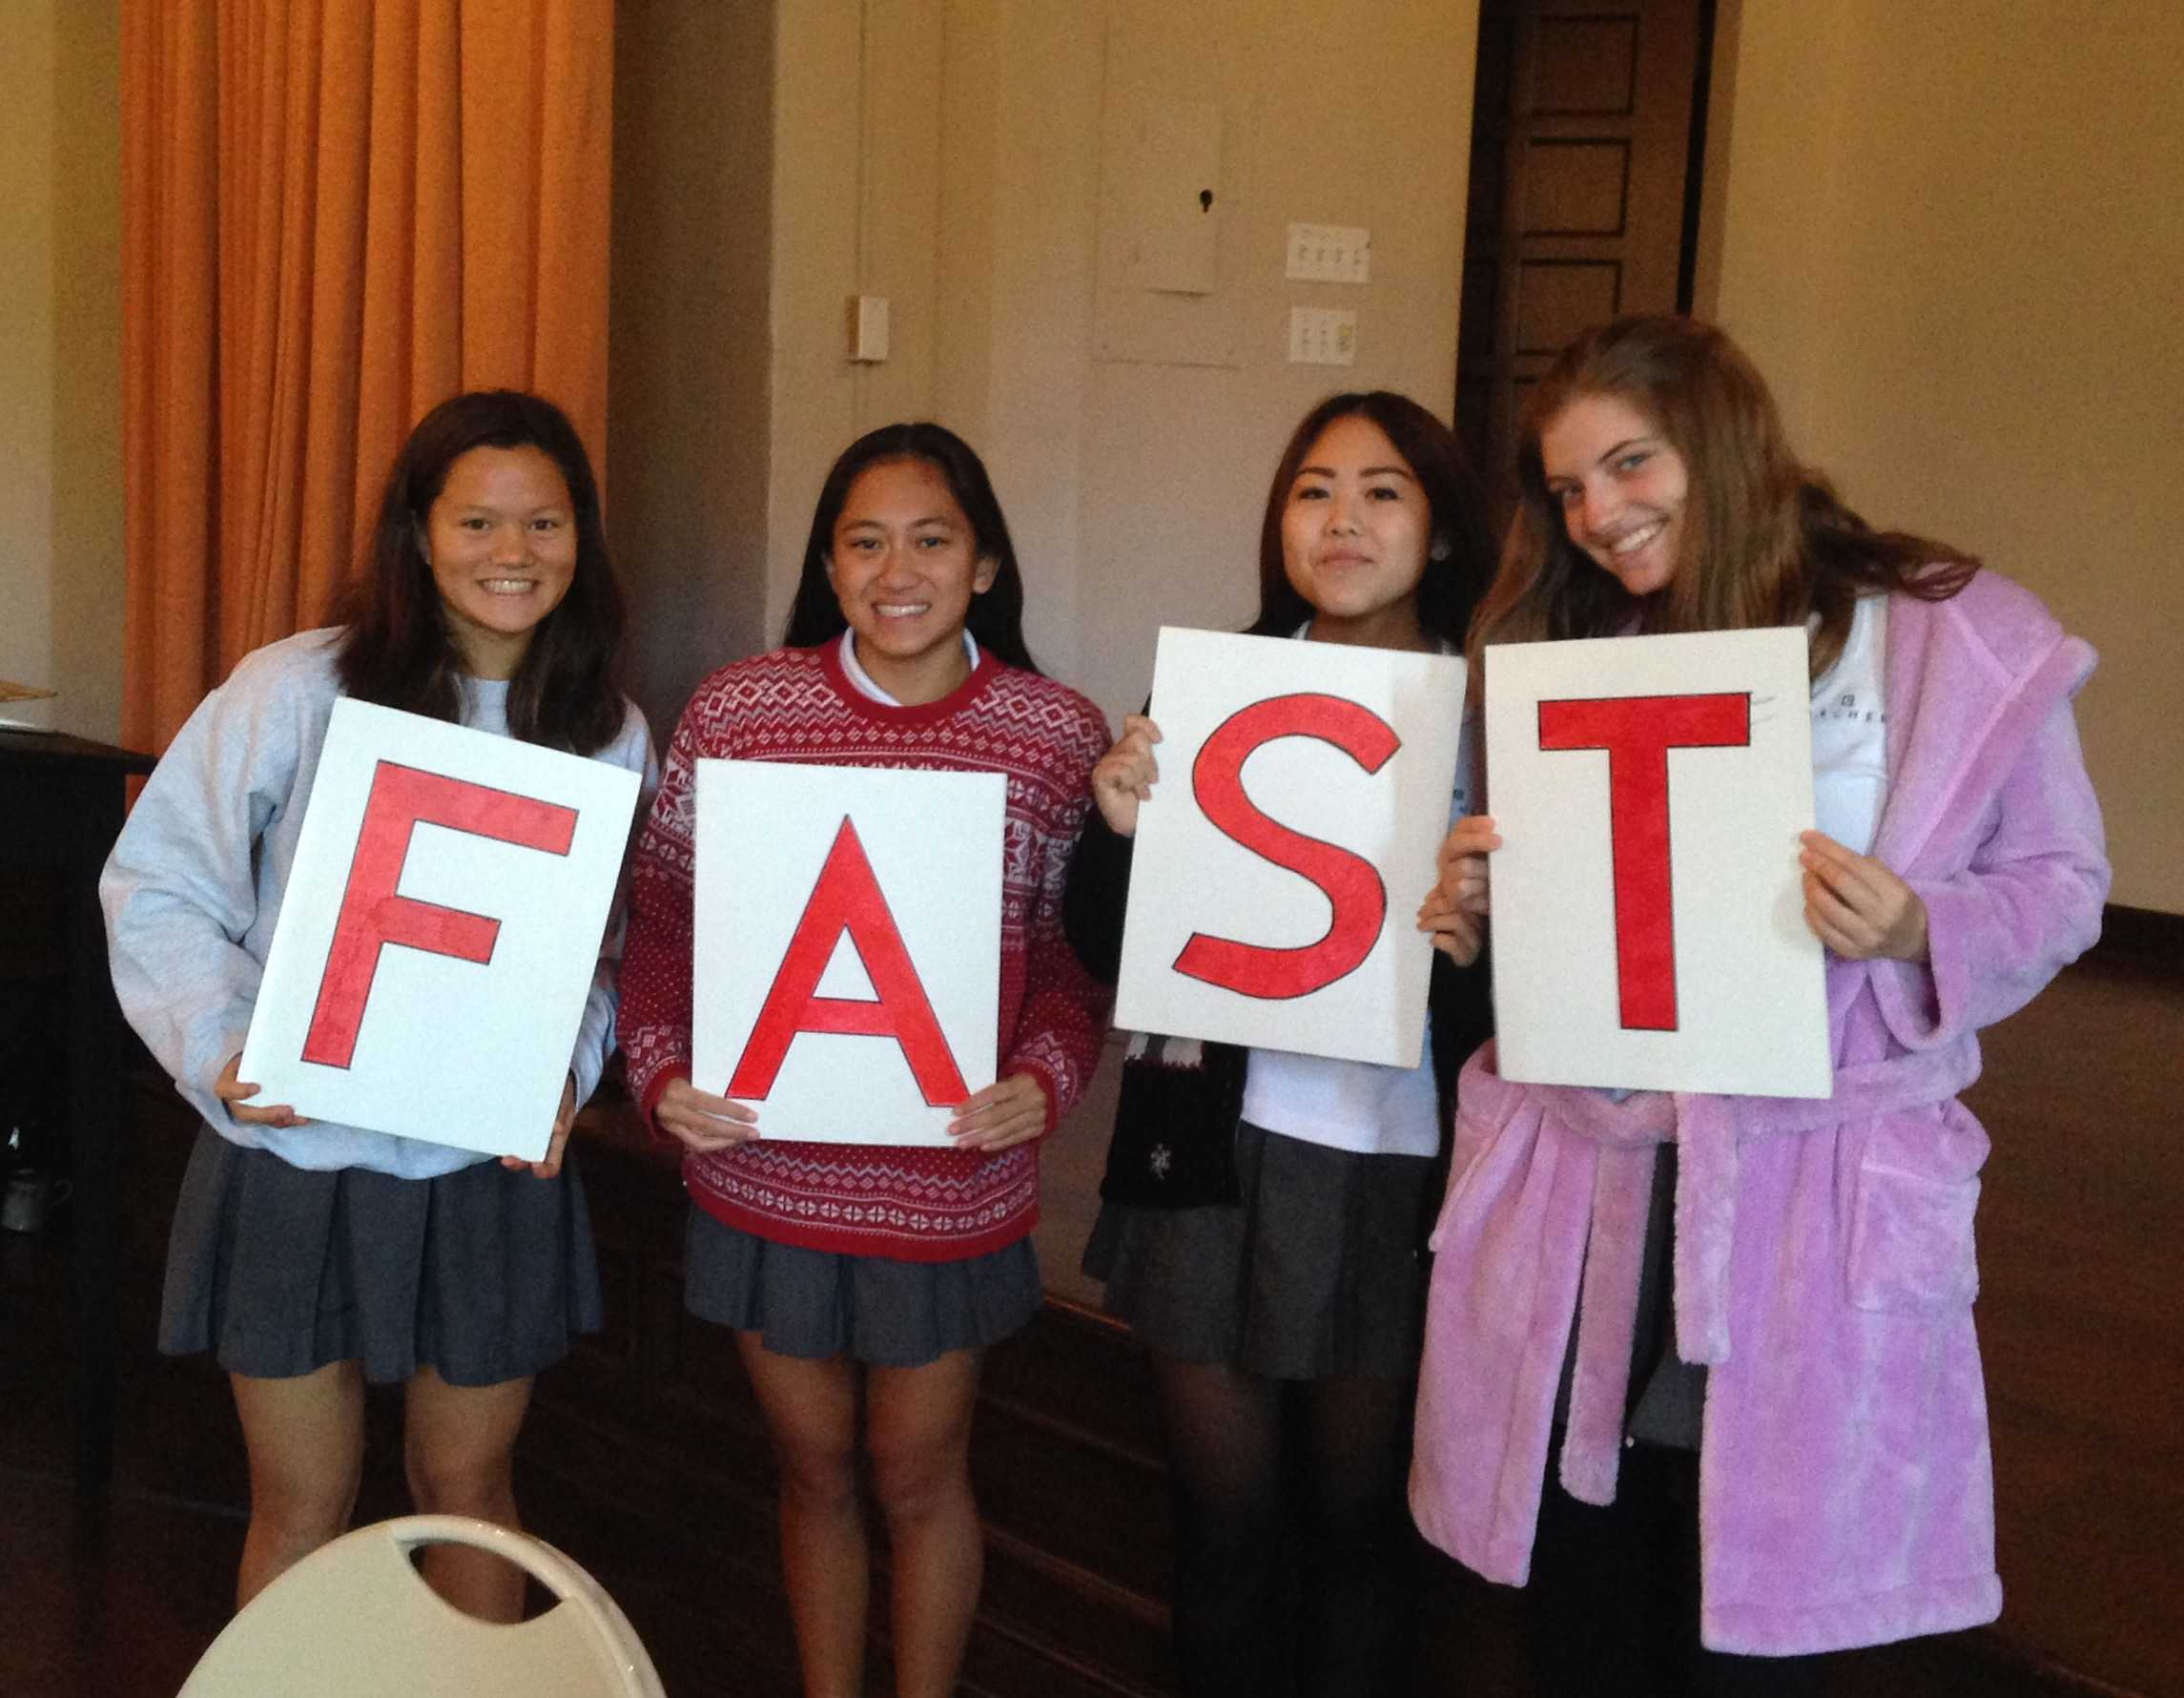 From left to right, Saskia Wong-Smith, Summer de Vera, Sydney Shintani, and Sara Friedman all '18 hold up